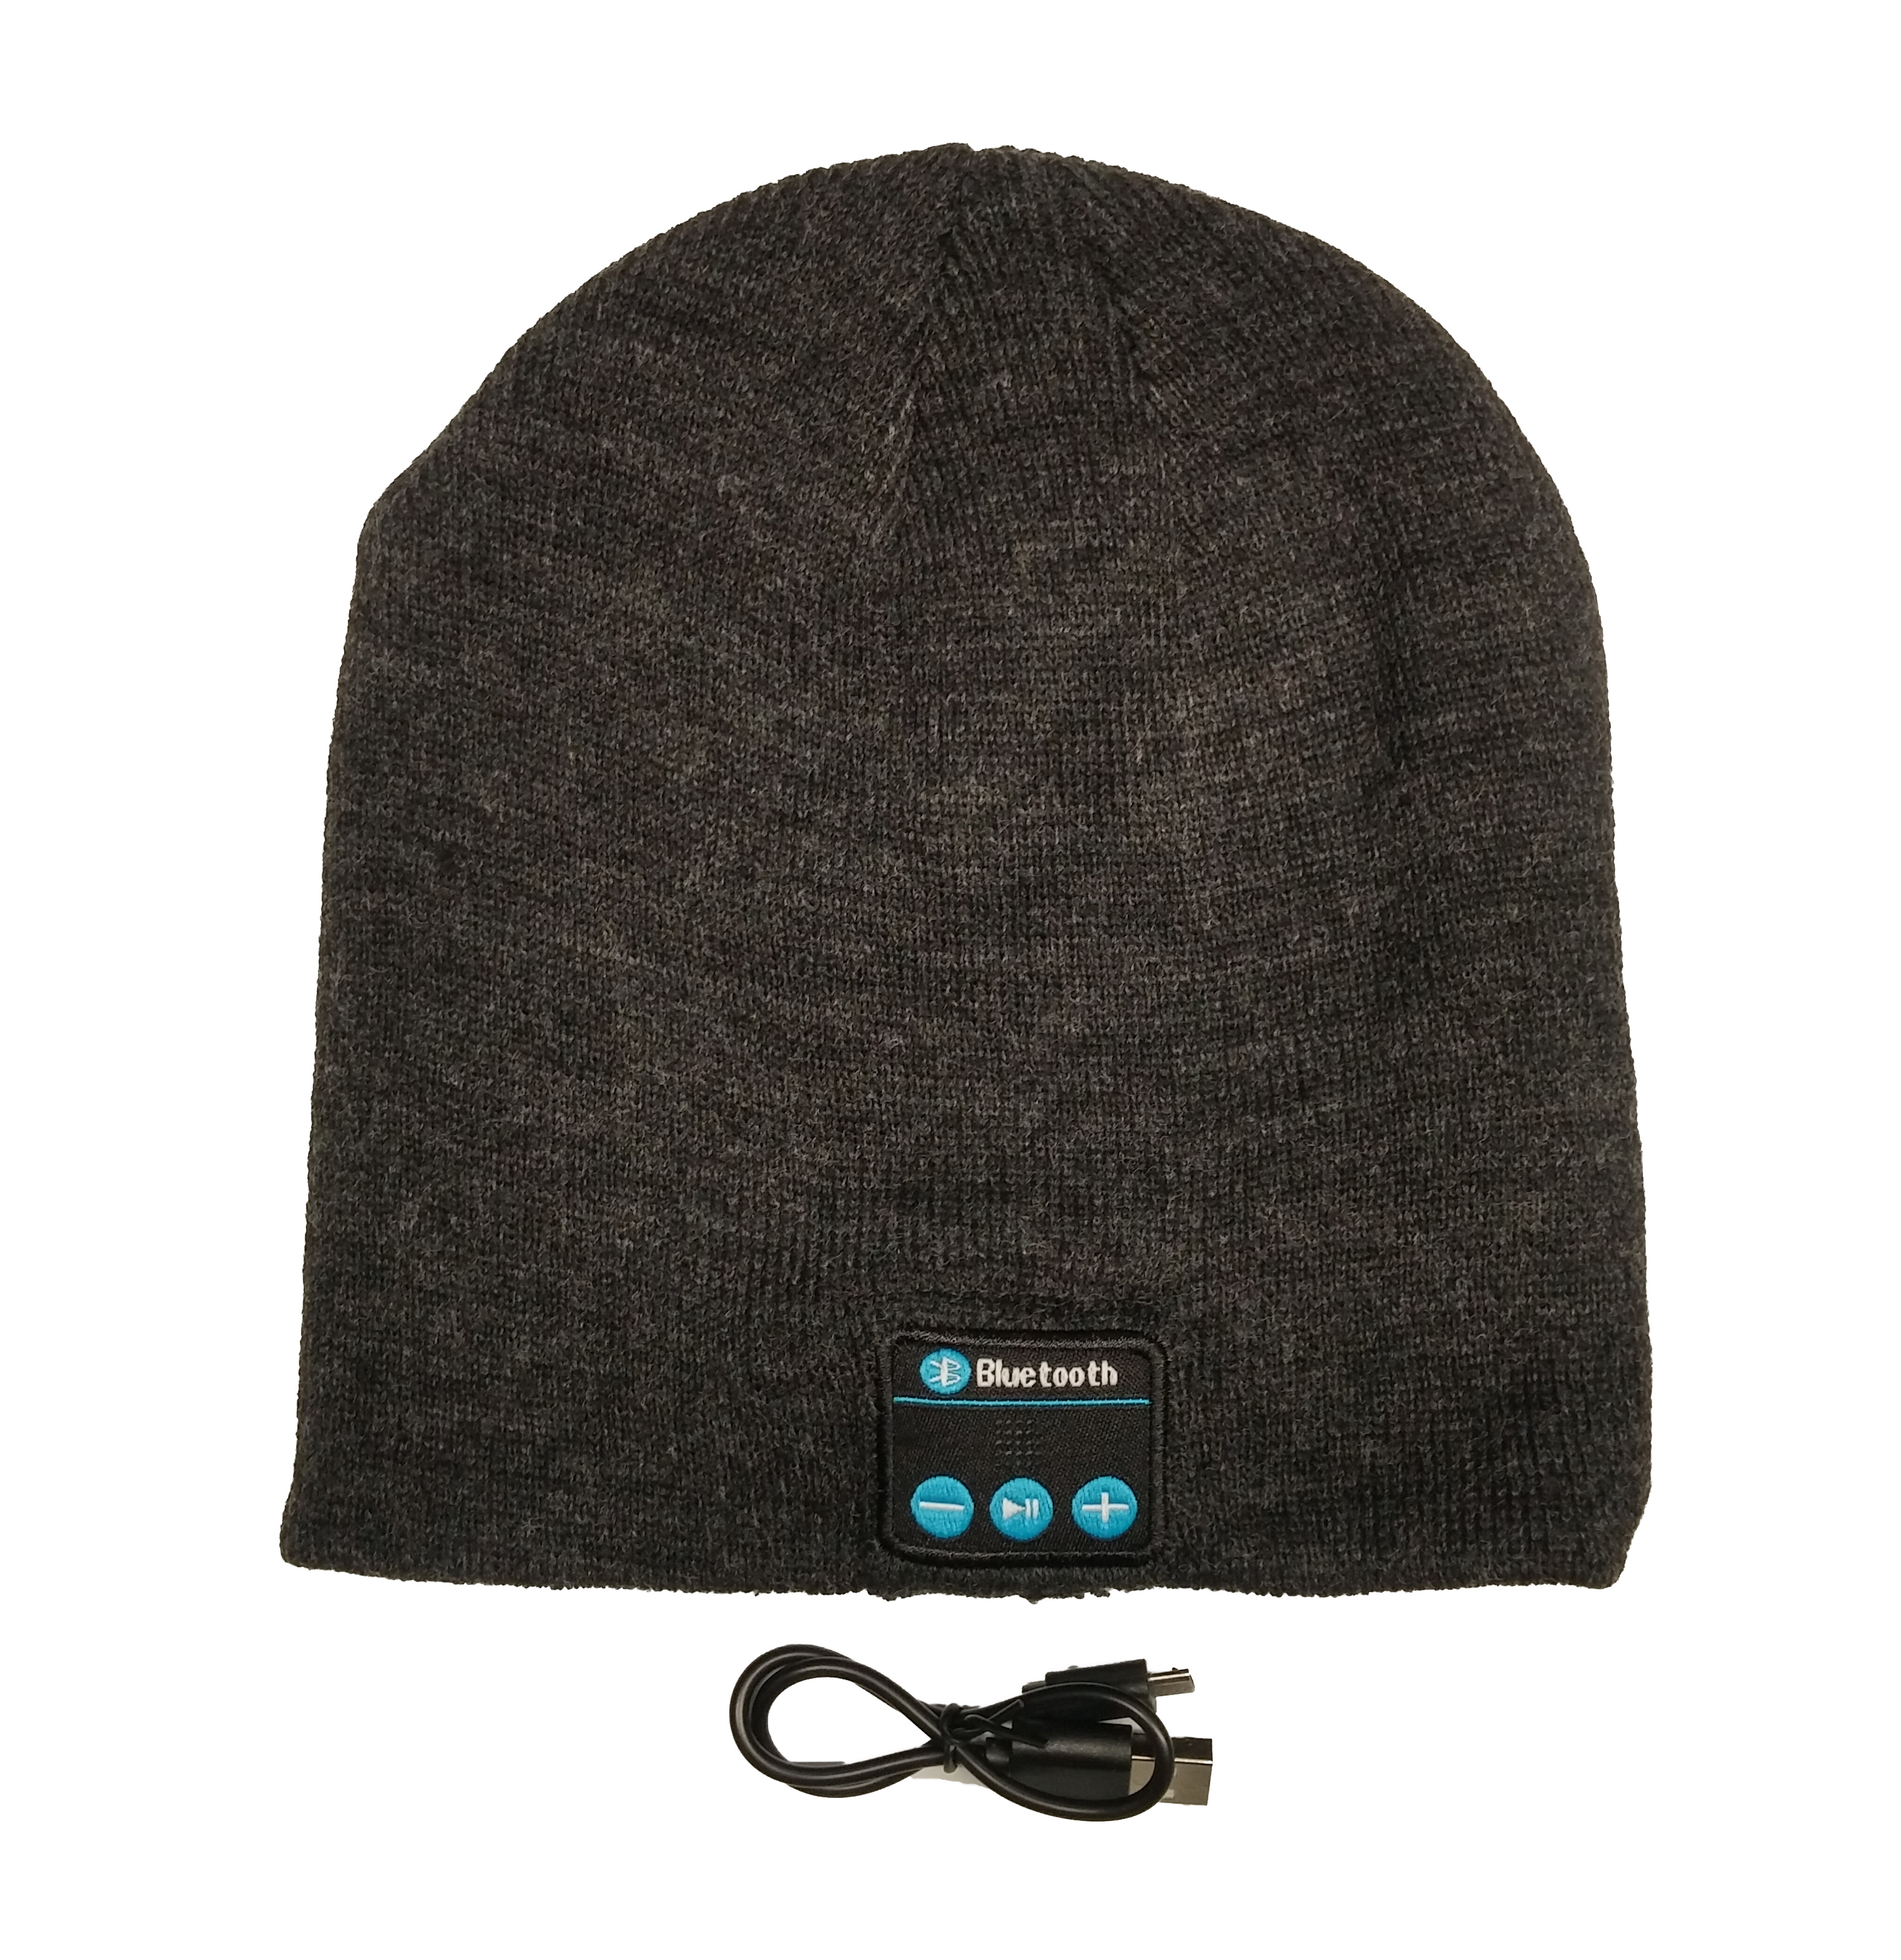 Bluetooth Beanie with Wireless Hands Free Easy Connect Technology Grey